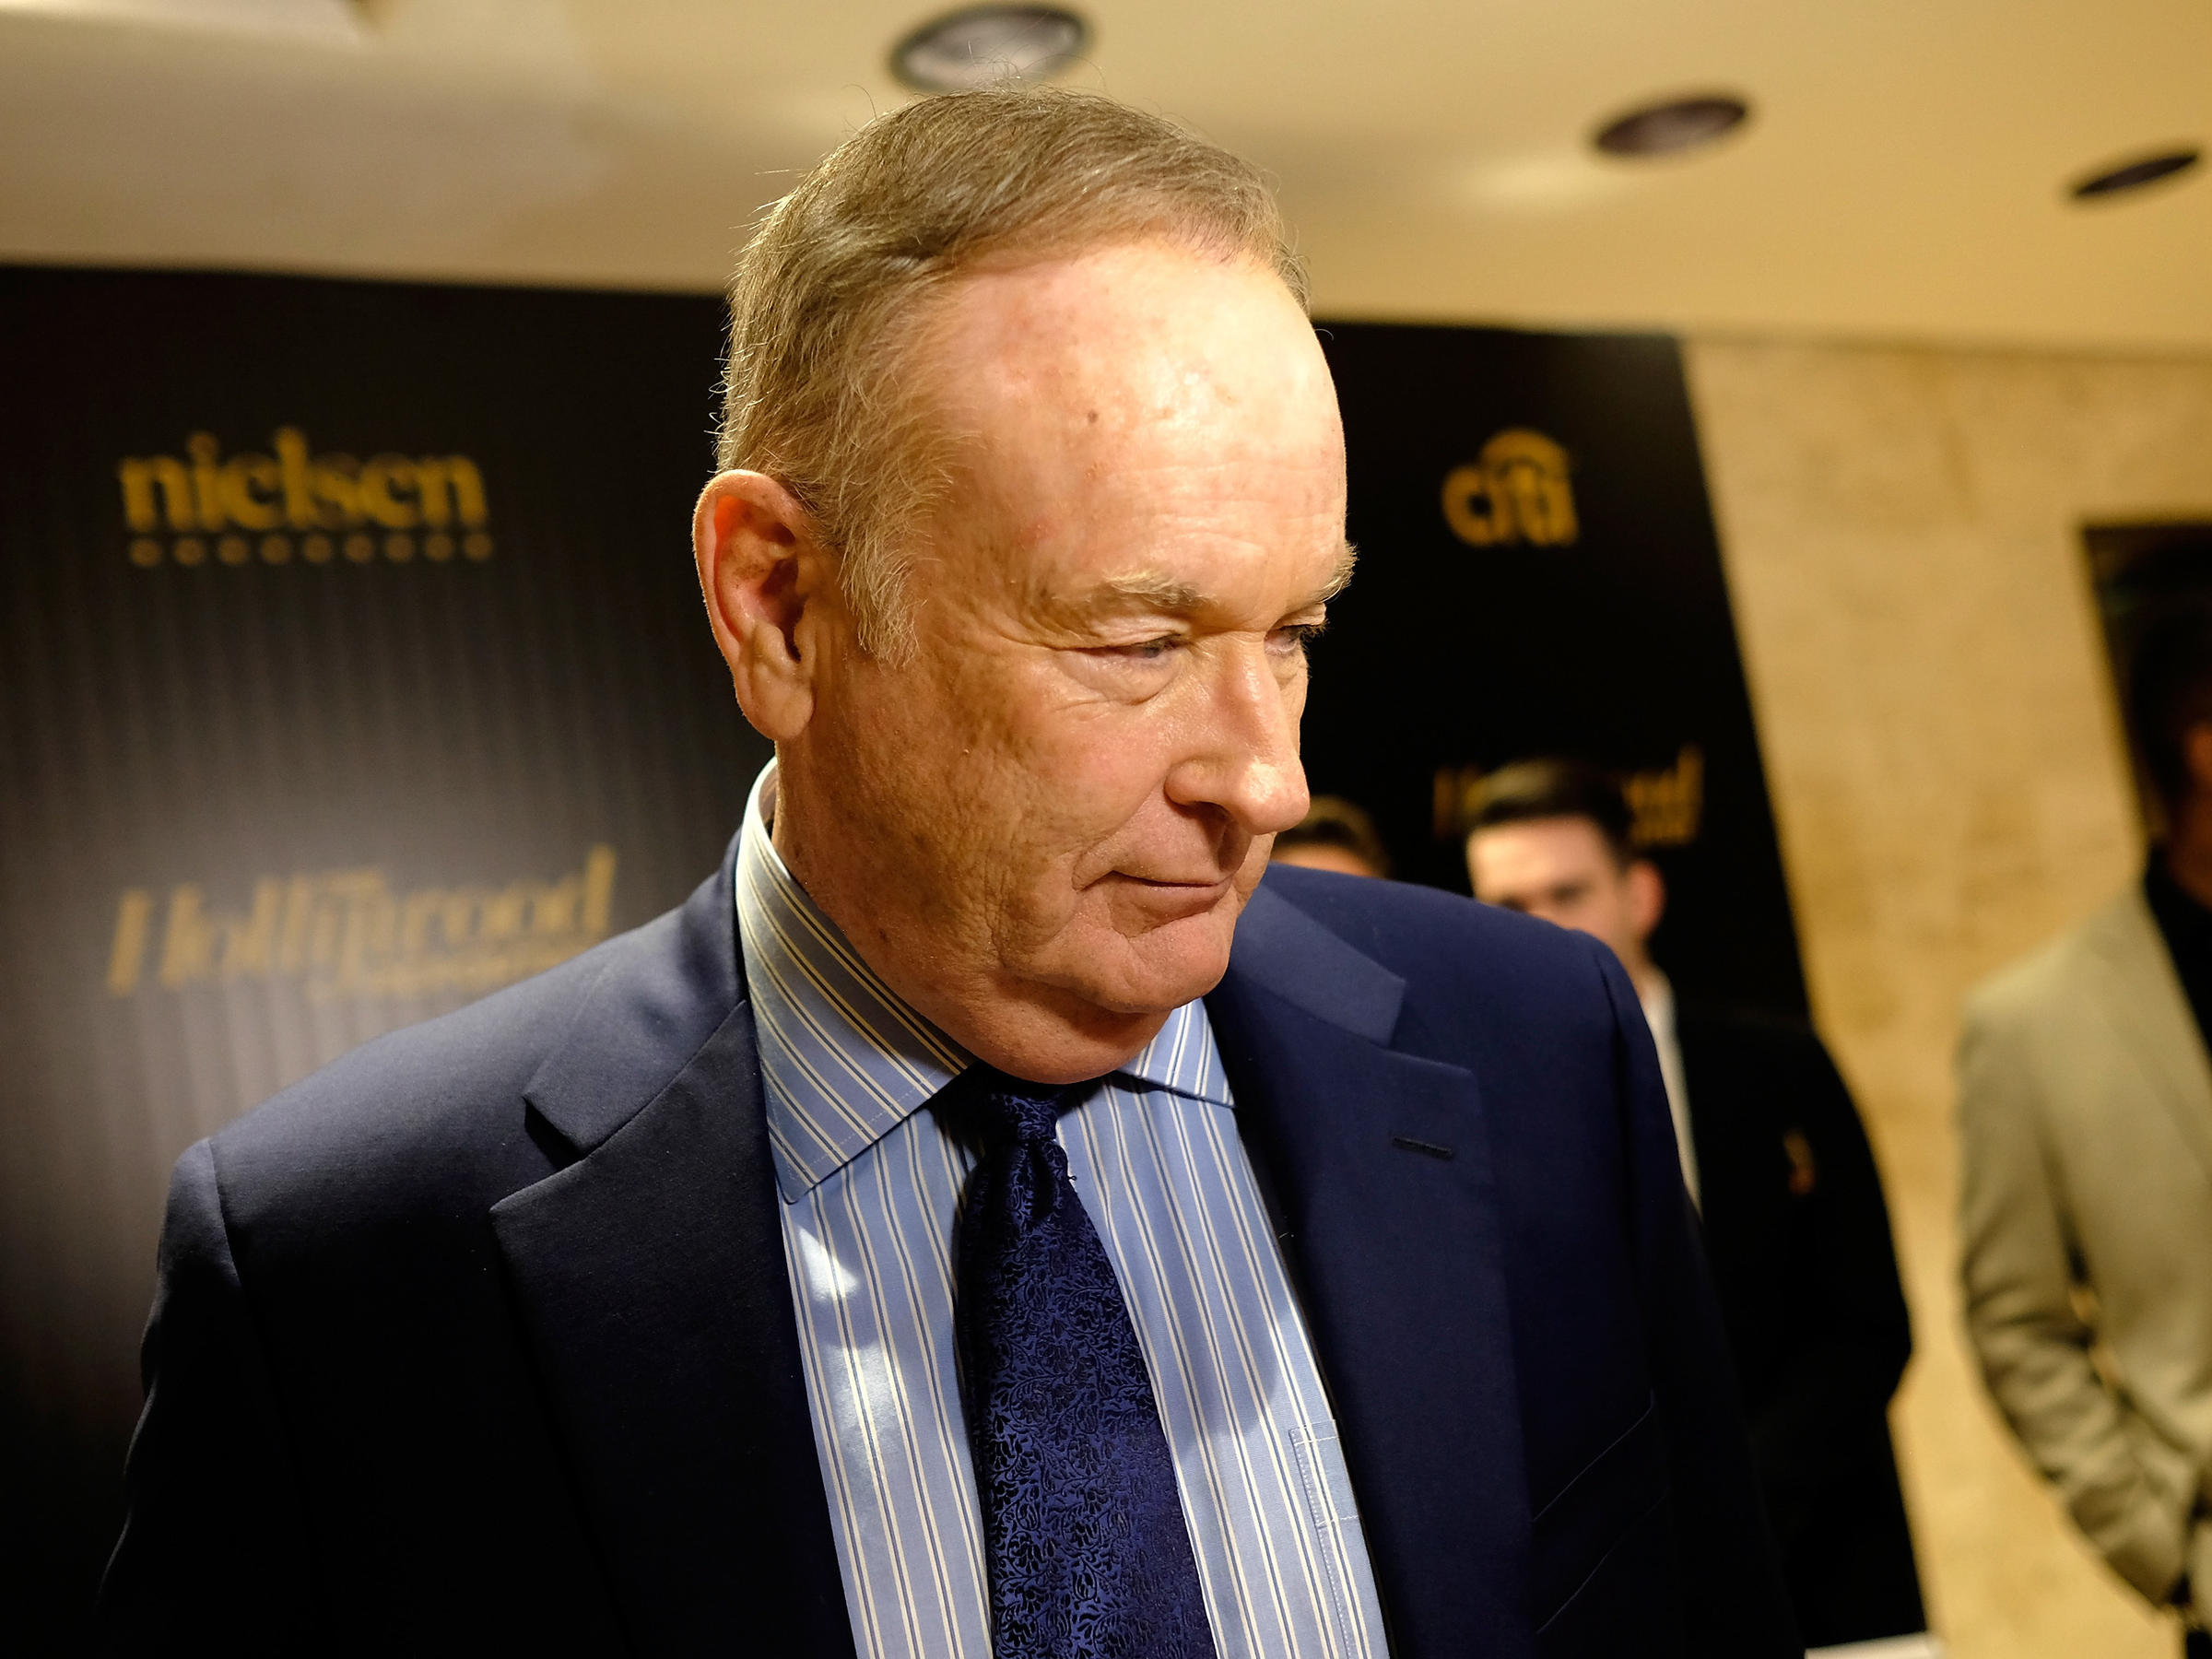 Internal memo on Bill O'Reilly sent to Fox News employees